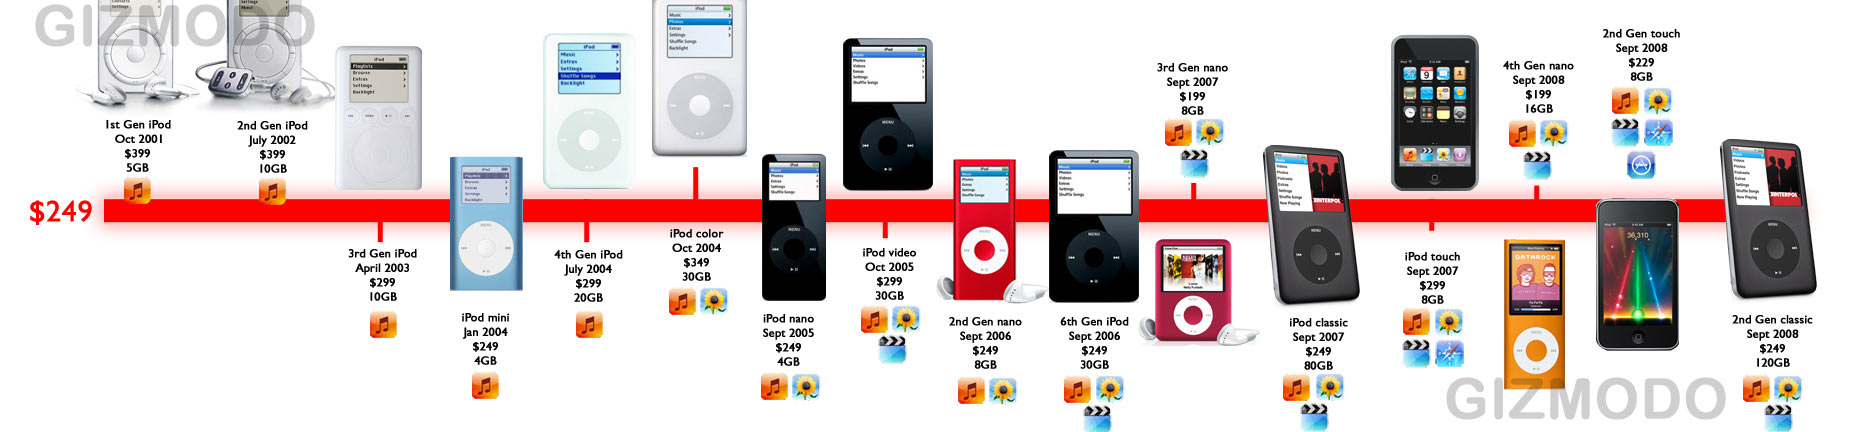 Apple ipod nano this is the biggest reinvention of the apple ipod nano since its debut in 2005